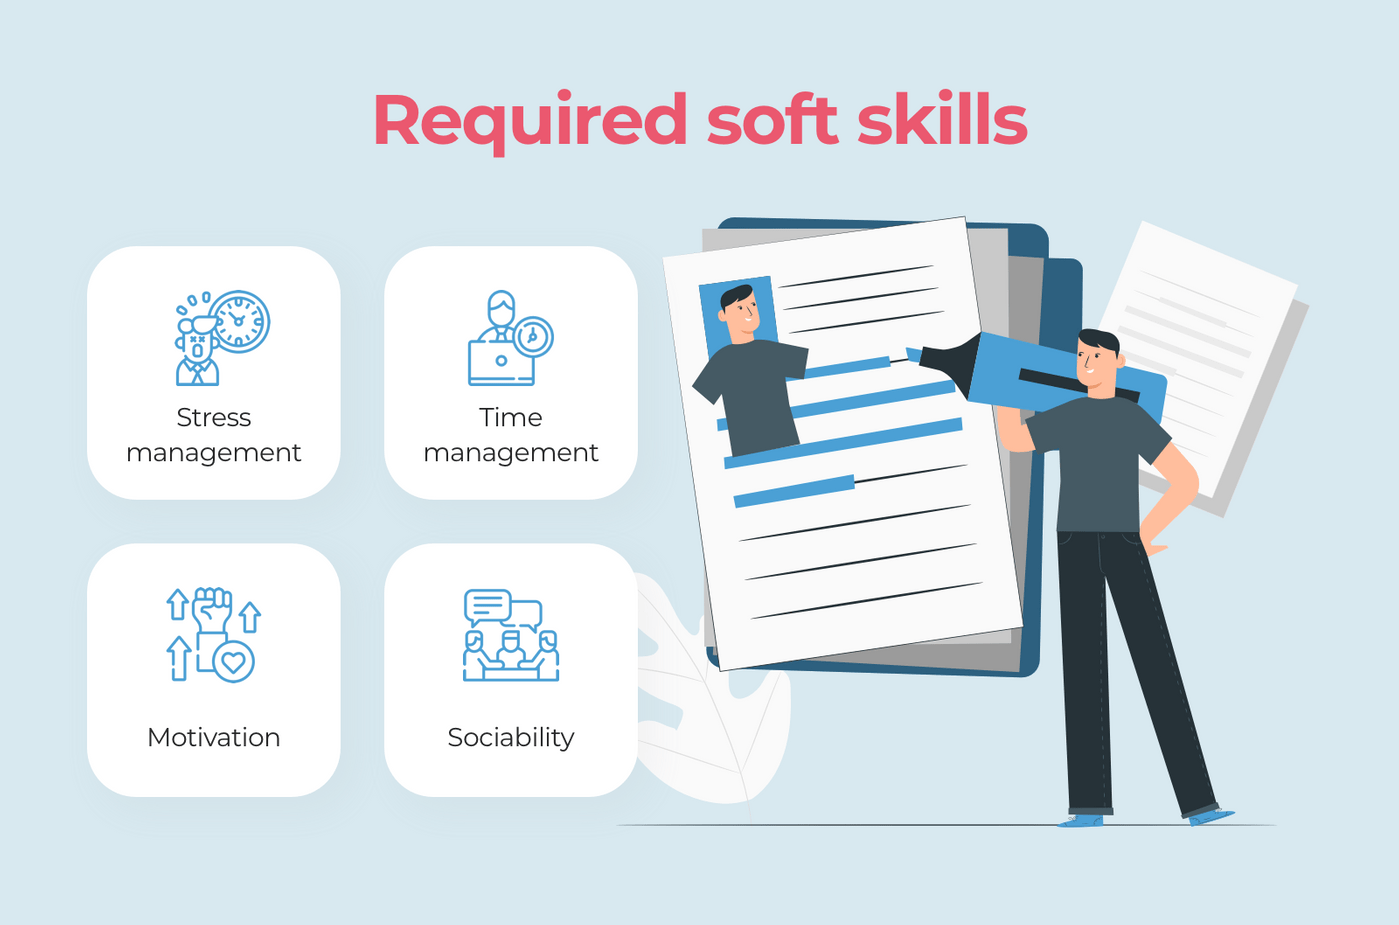 How to hire a developer with outstanding soft skills?